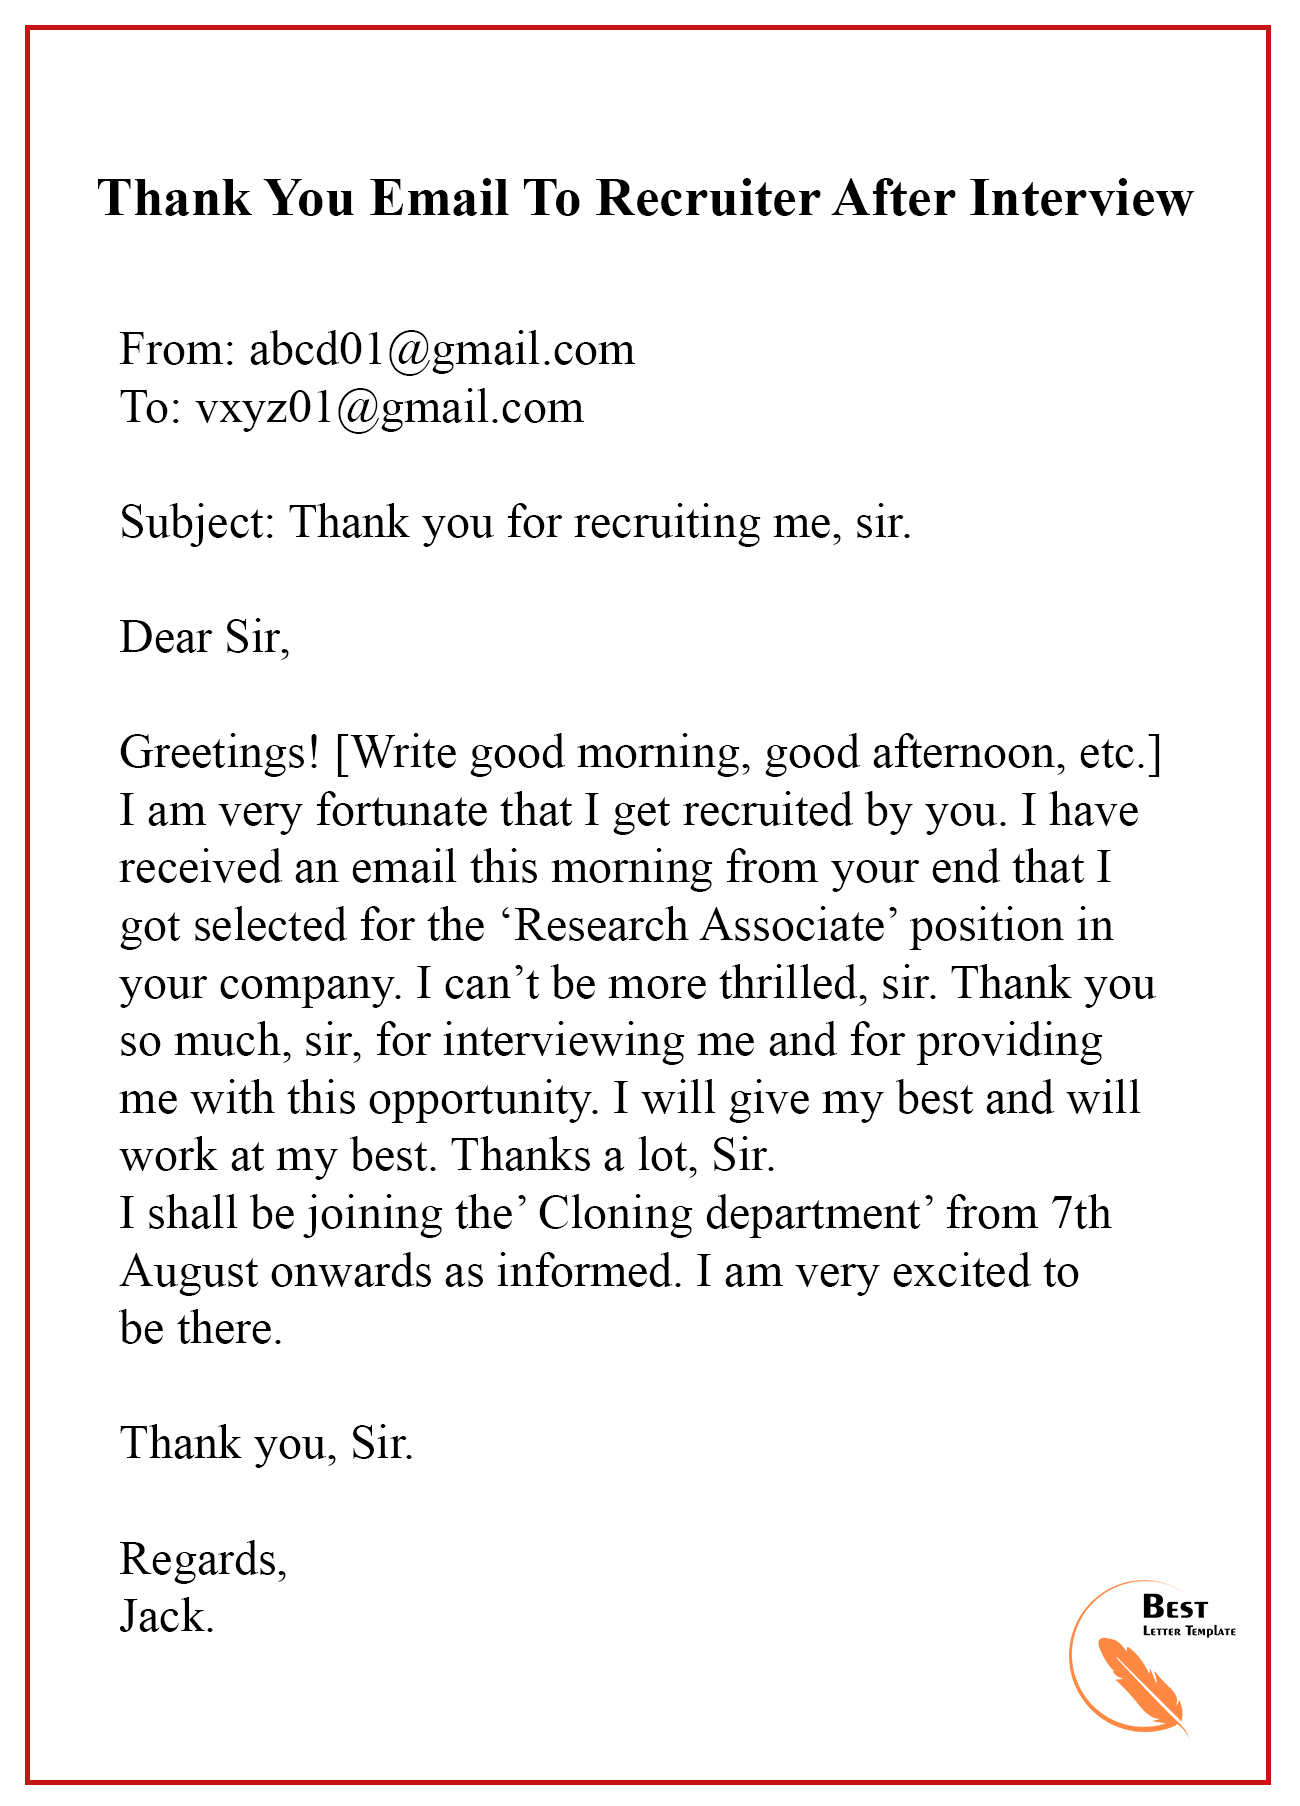 Thank You Letter Interview Email from bestlettertemplate.com